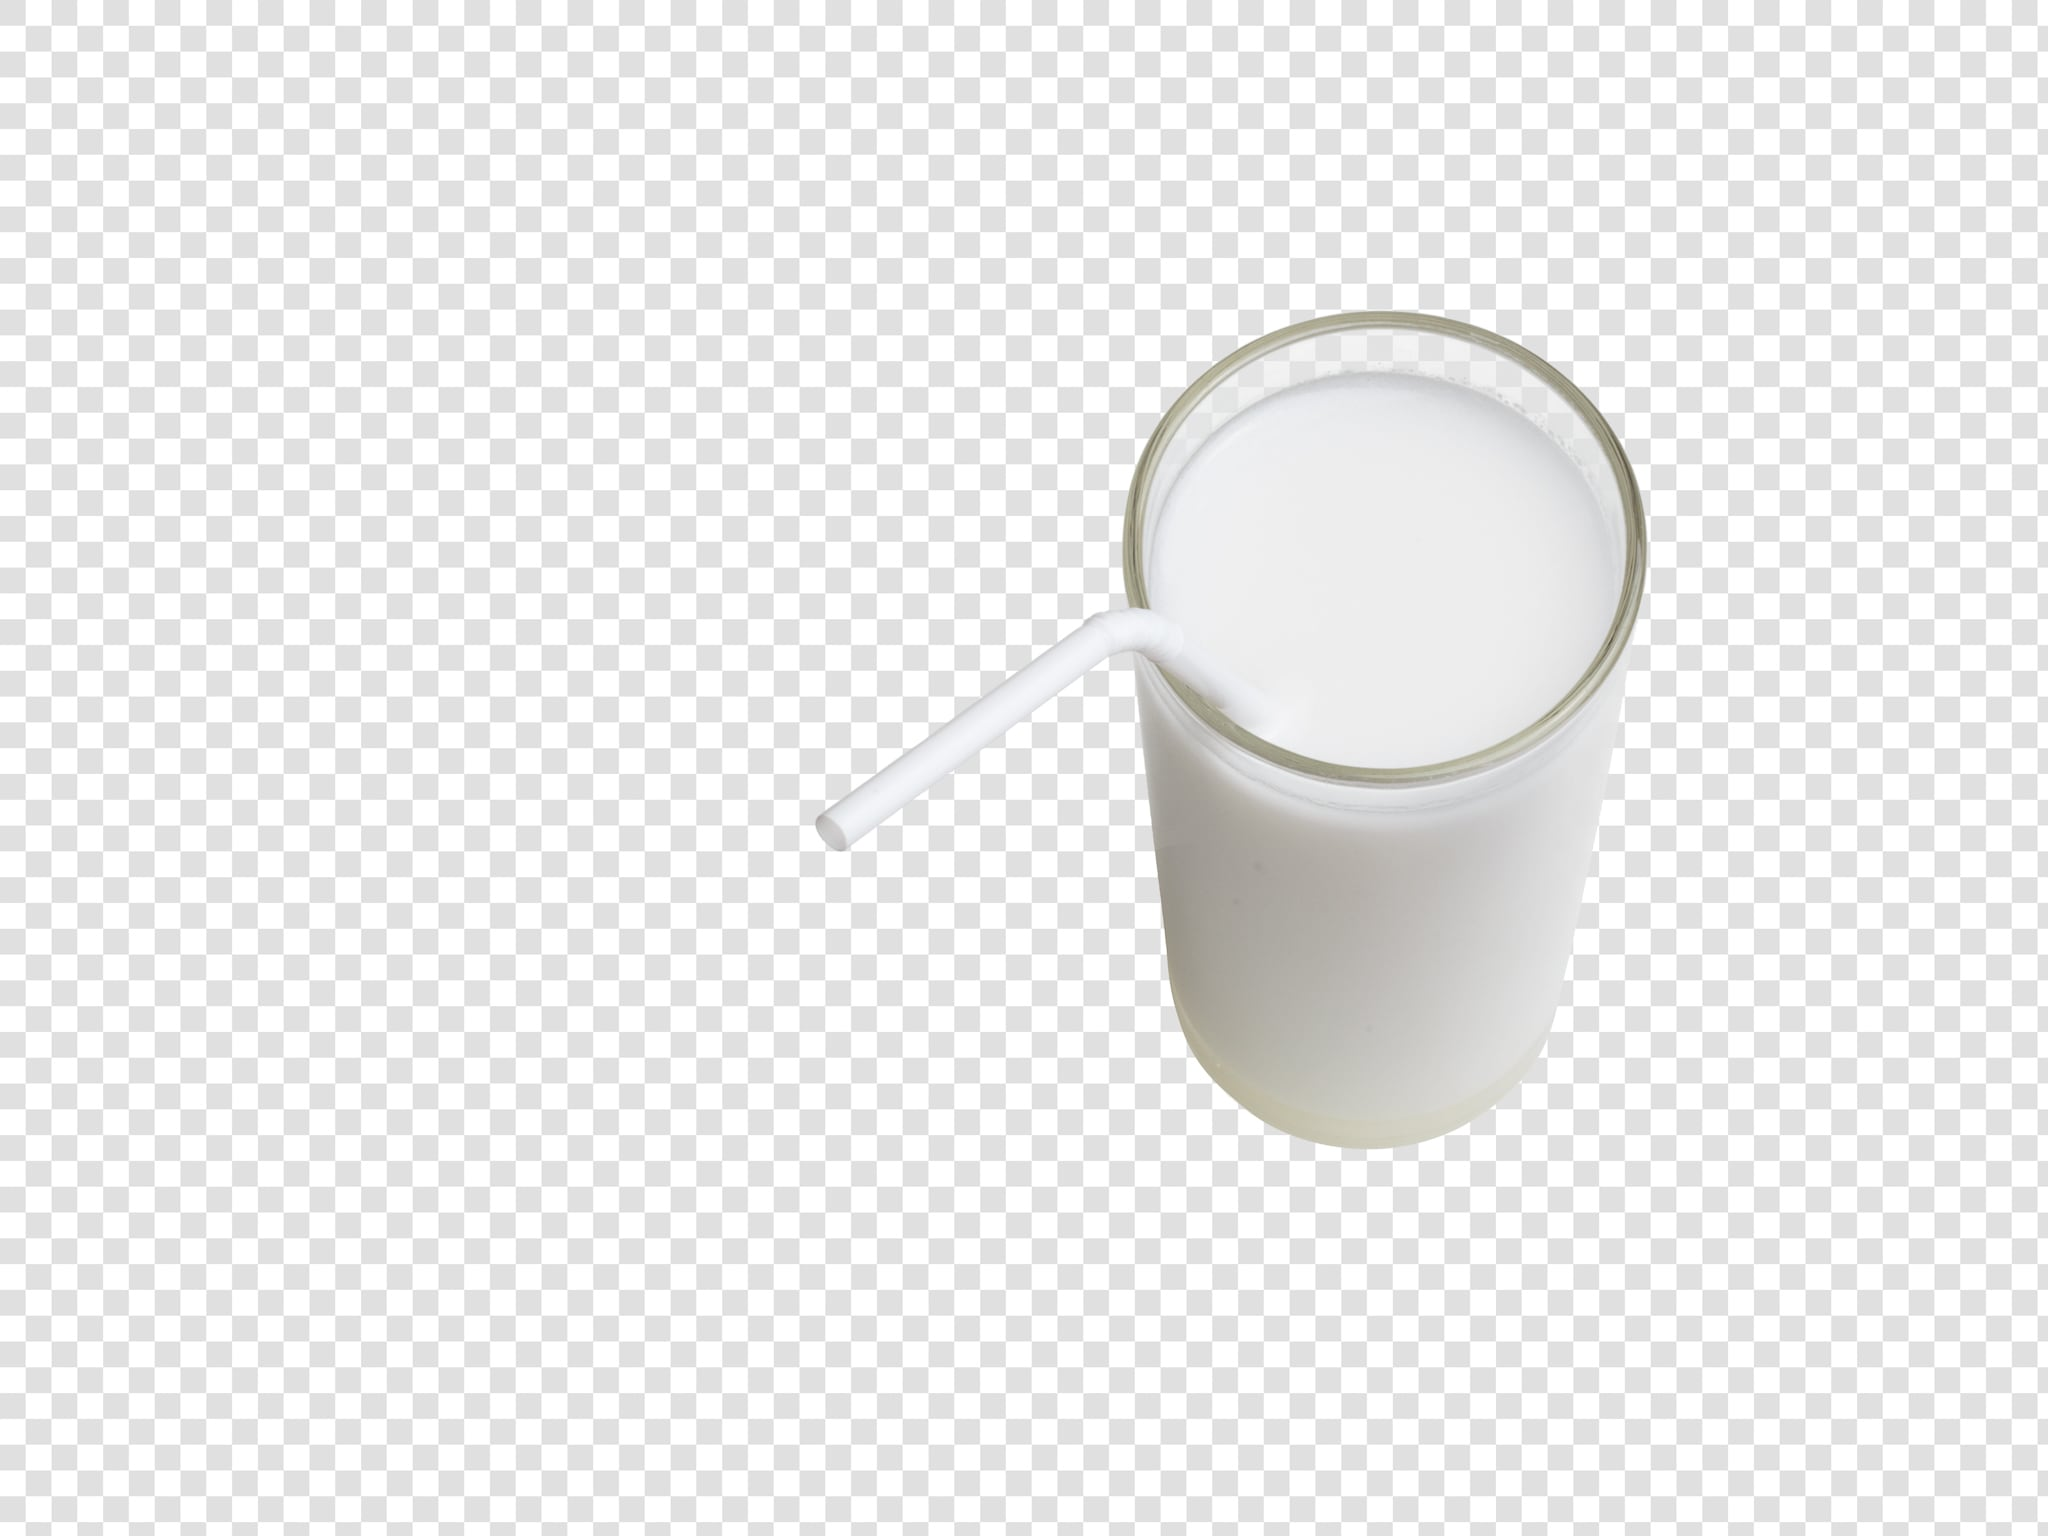 Coconut milk PSD layered image